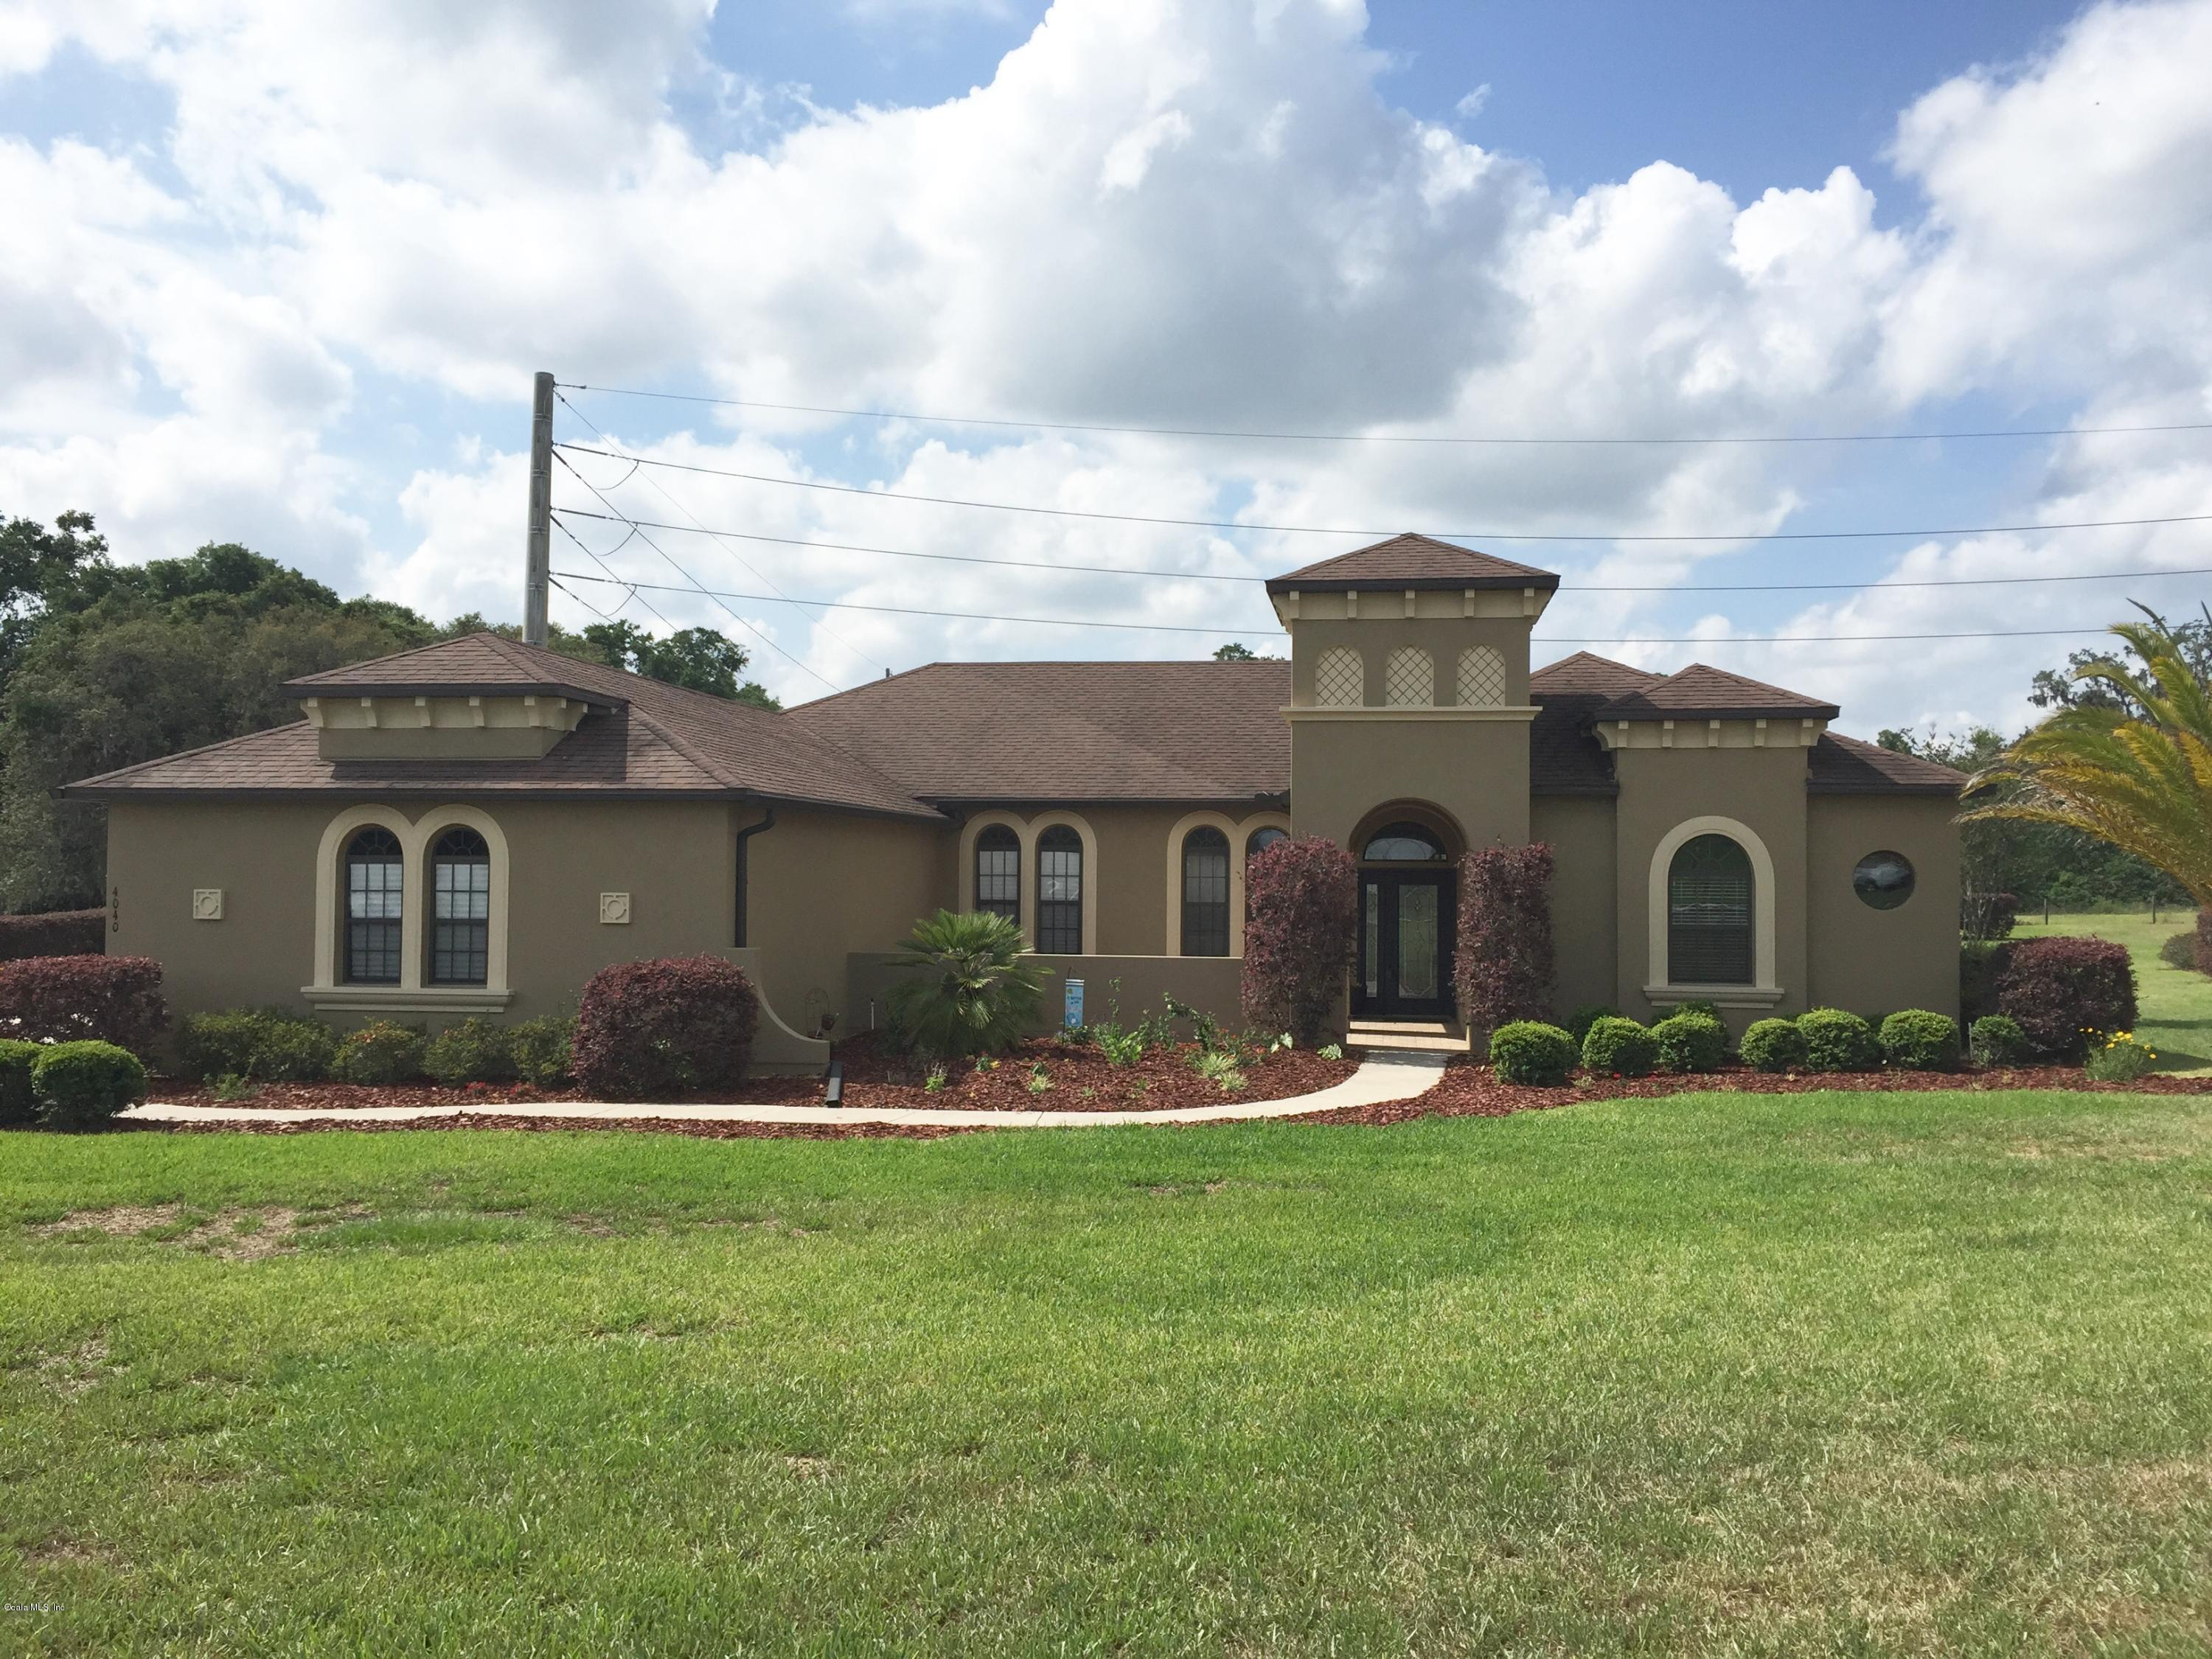 4040 SE 39TH CIRCLE, OCALA, FL 34480